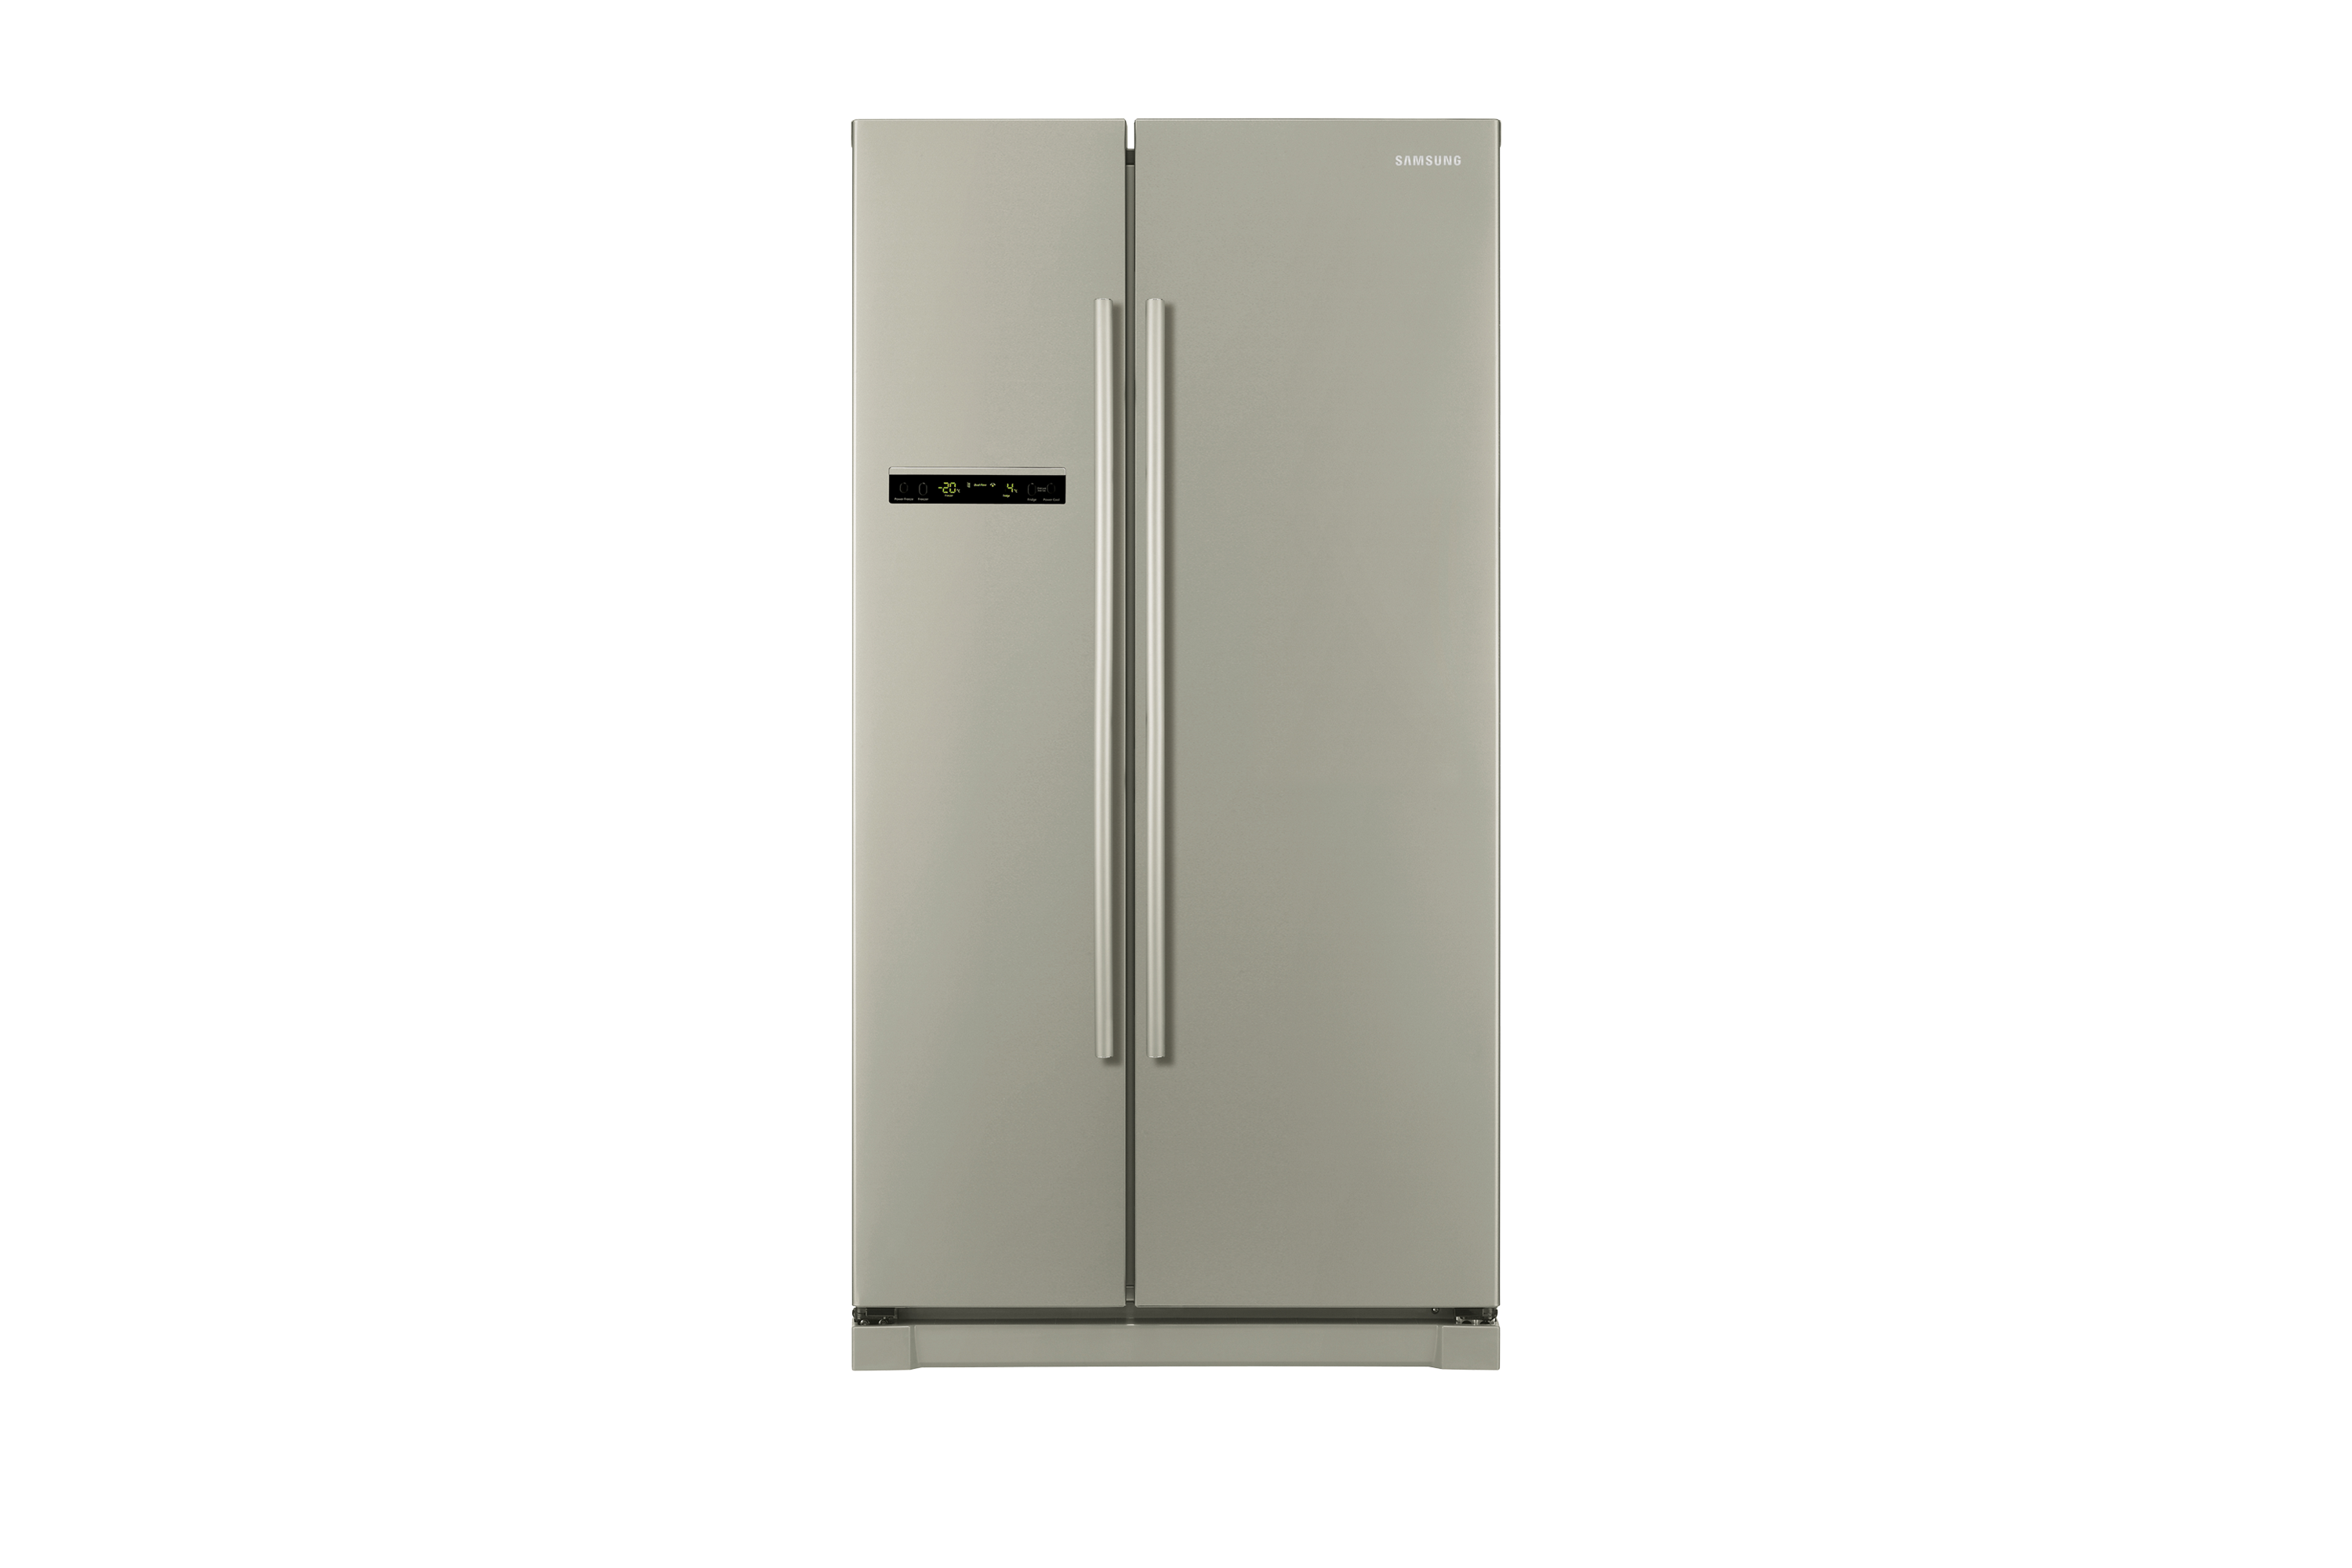 RSA1SHPN A-Series American Style Fridge Freezer